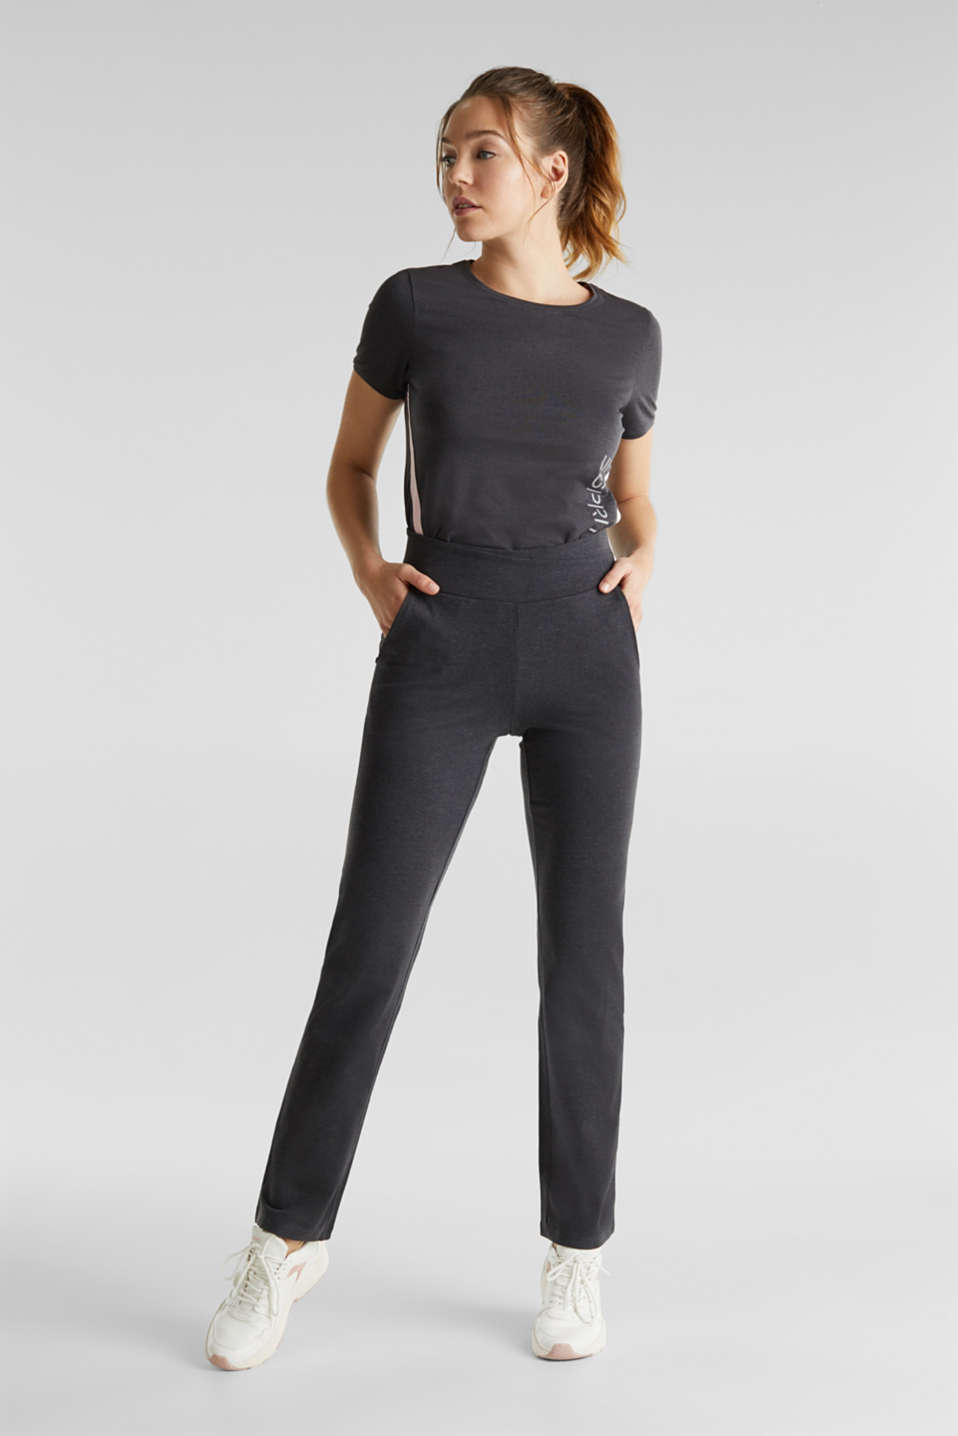 Stretch jersey trousers with organic cotton, ANTHRACITE 2, detail image number 0